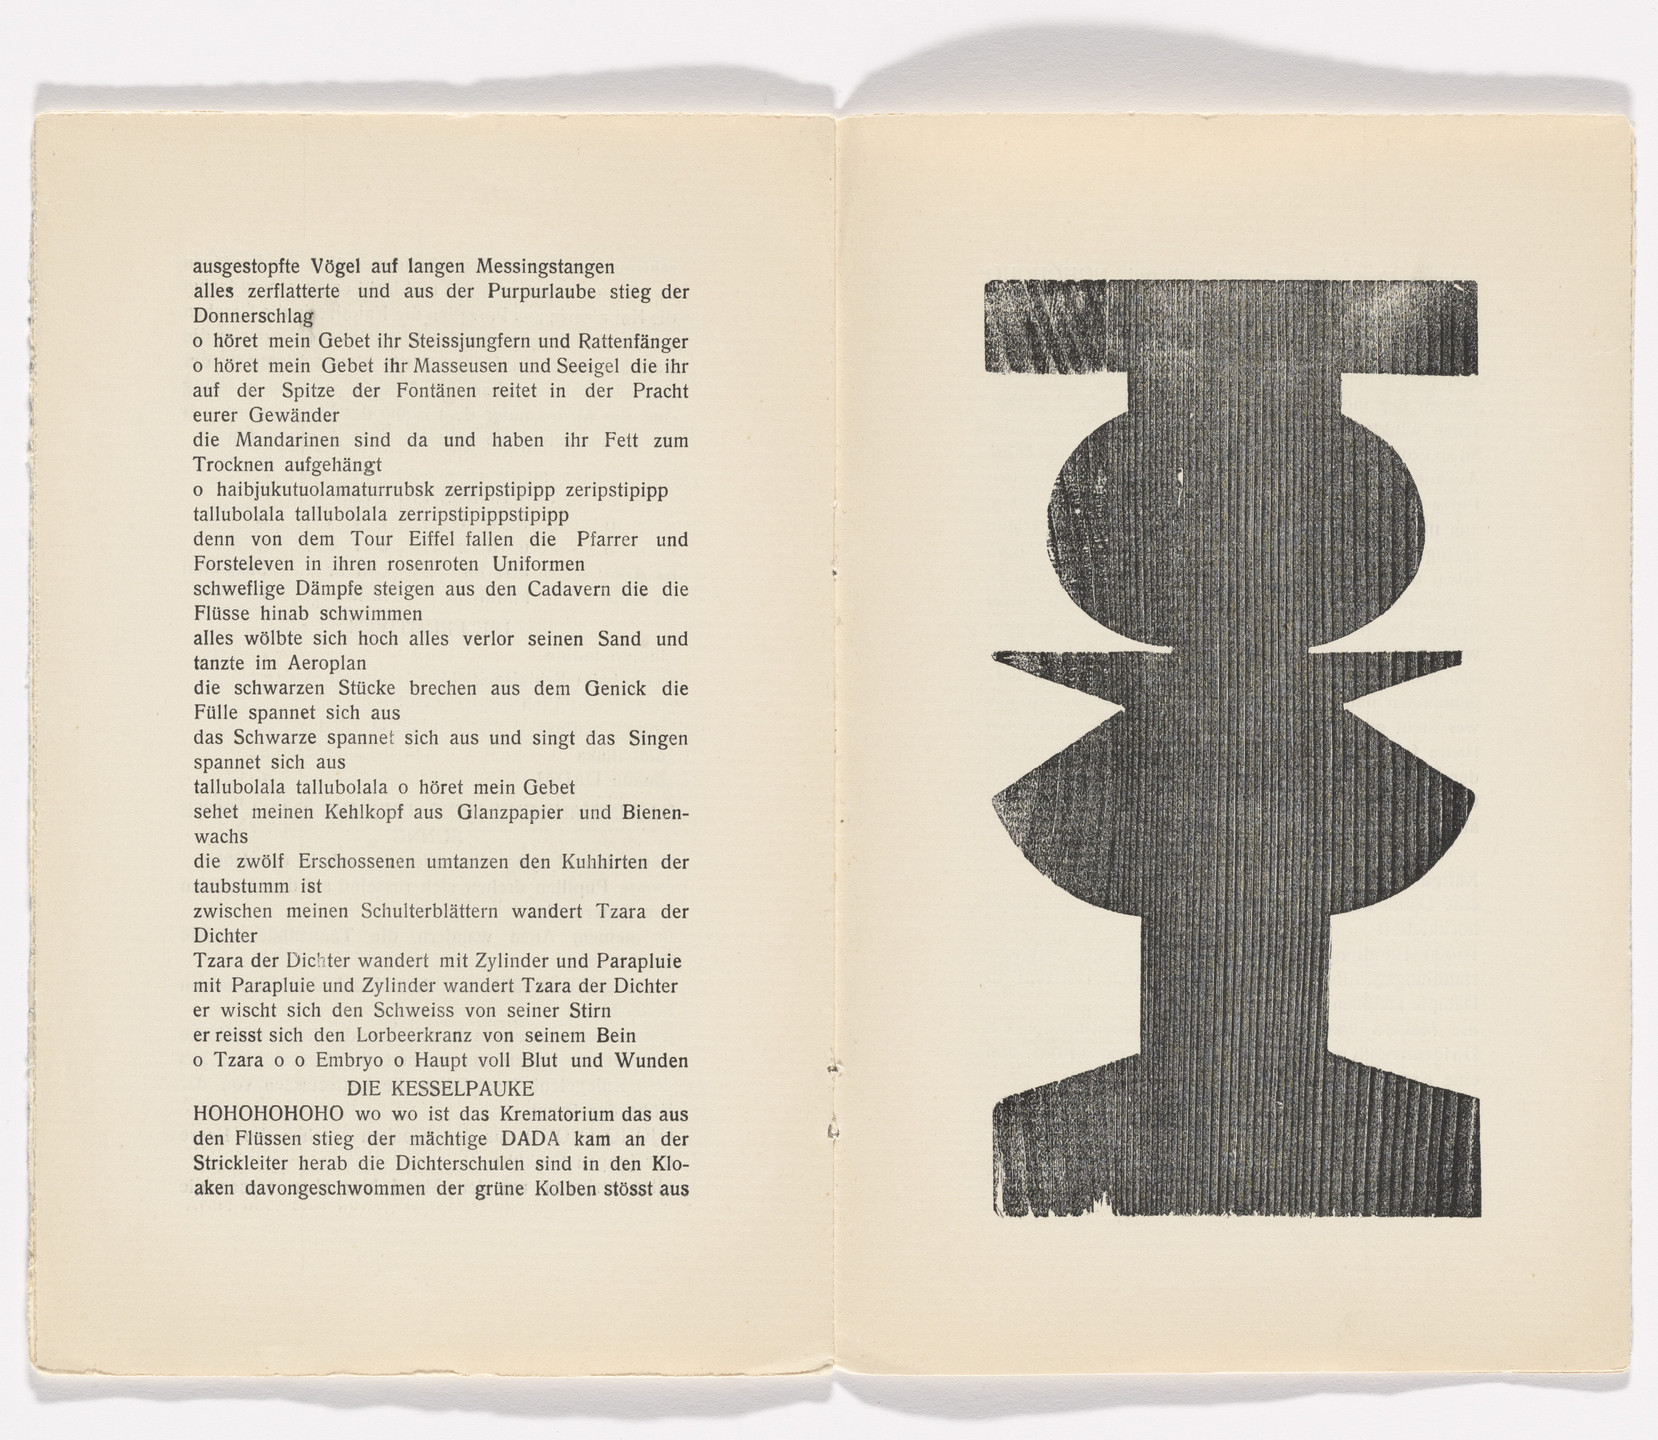 Jean (Hans) Arp. Plate (folio 7) from Phantastische Gebete (Fantastic Prayers). 1916